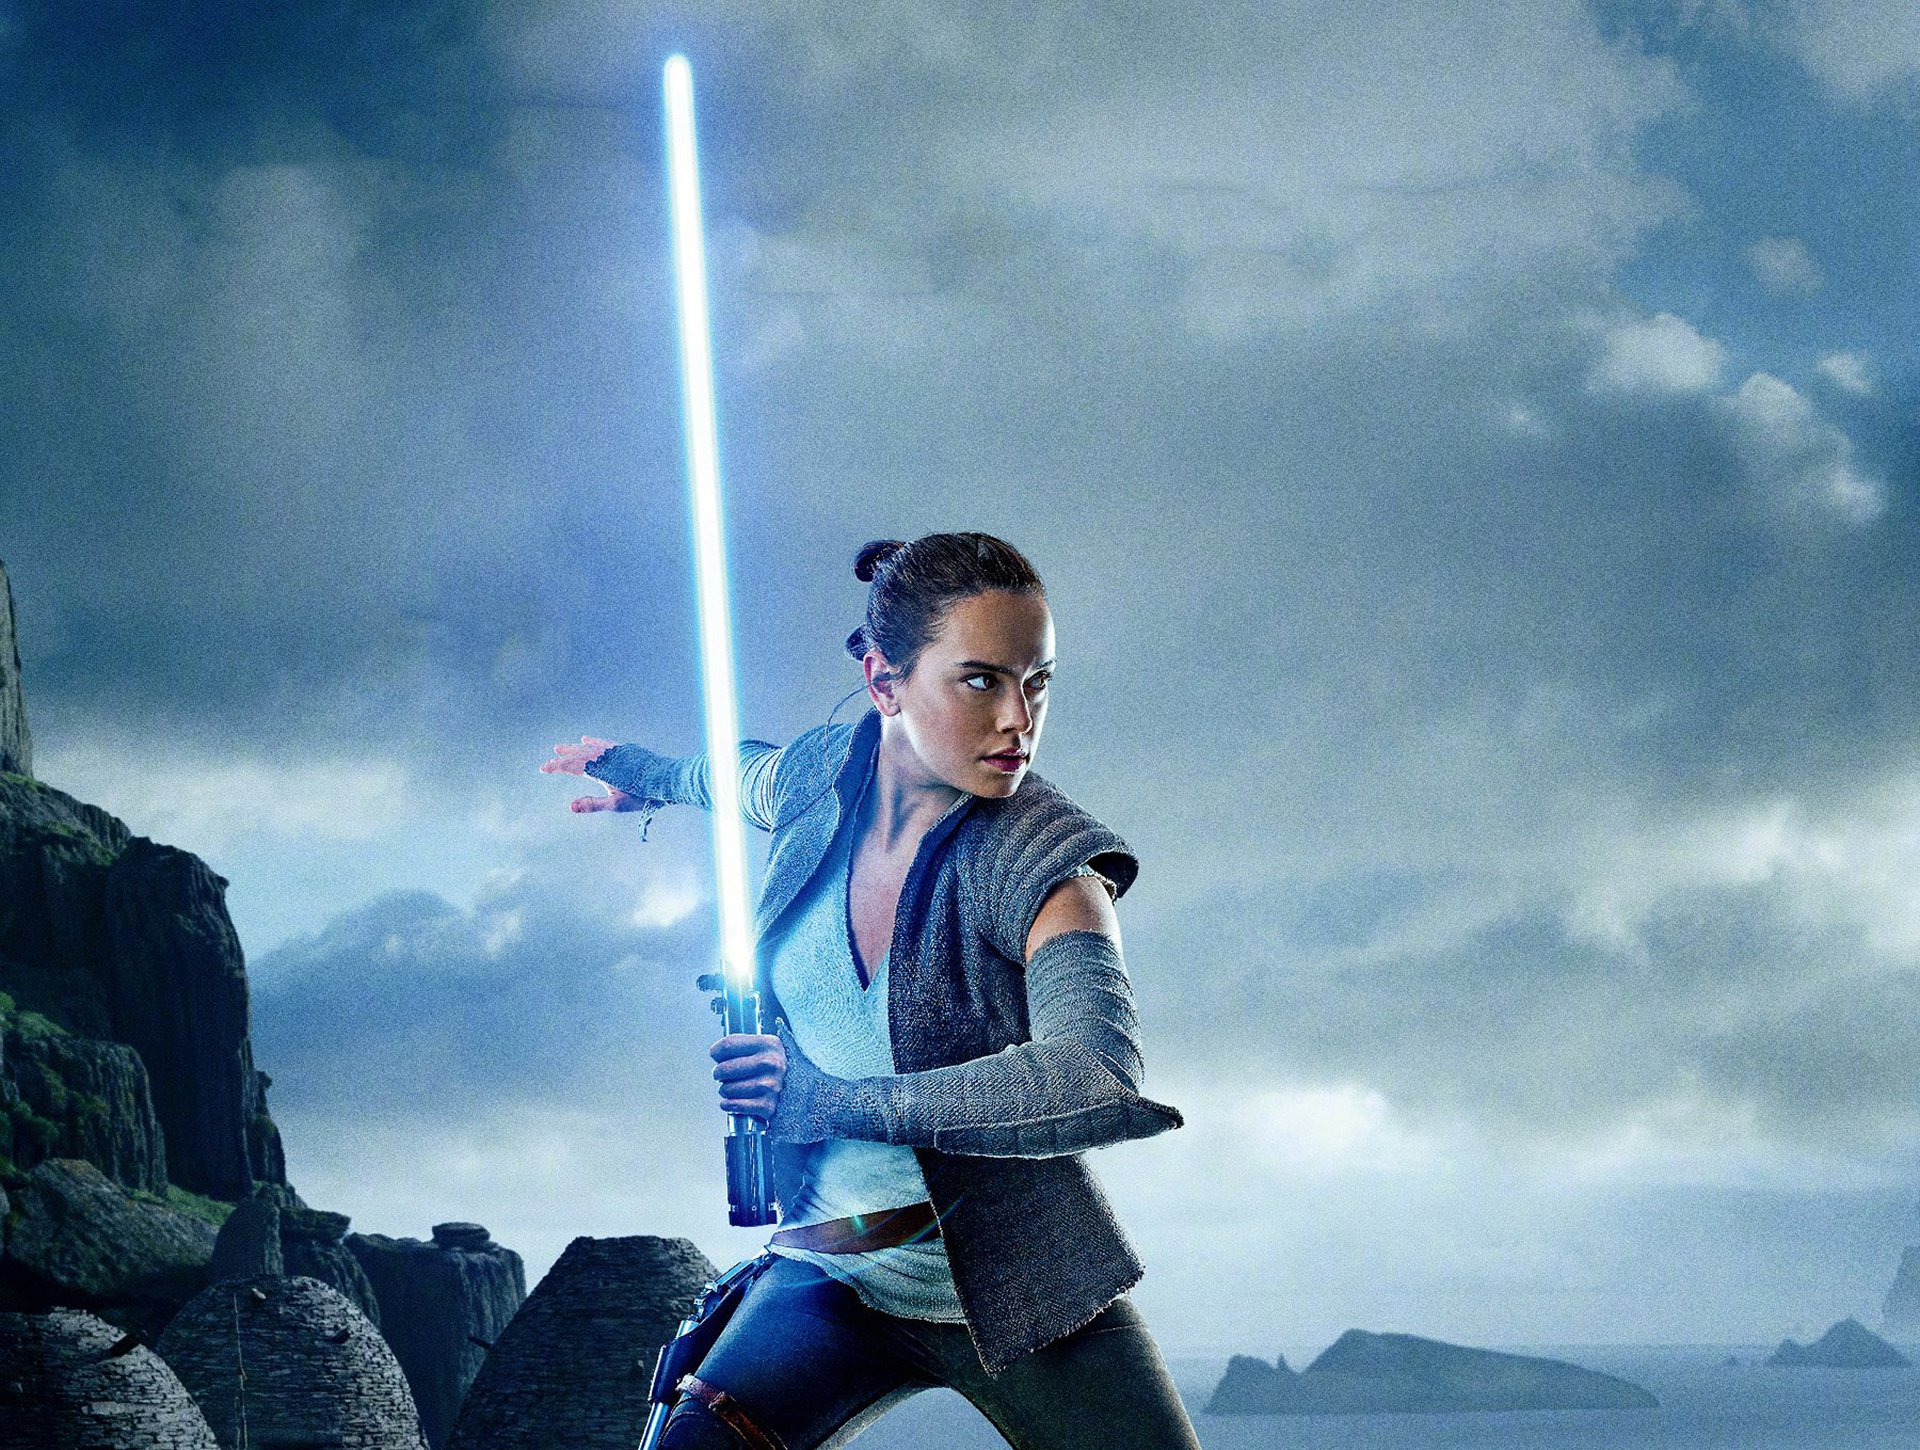 Free Download Rey In Star Wars The Last Jedi Wallpaper 1920x1450